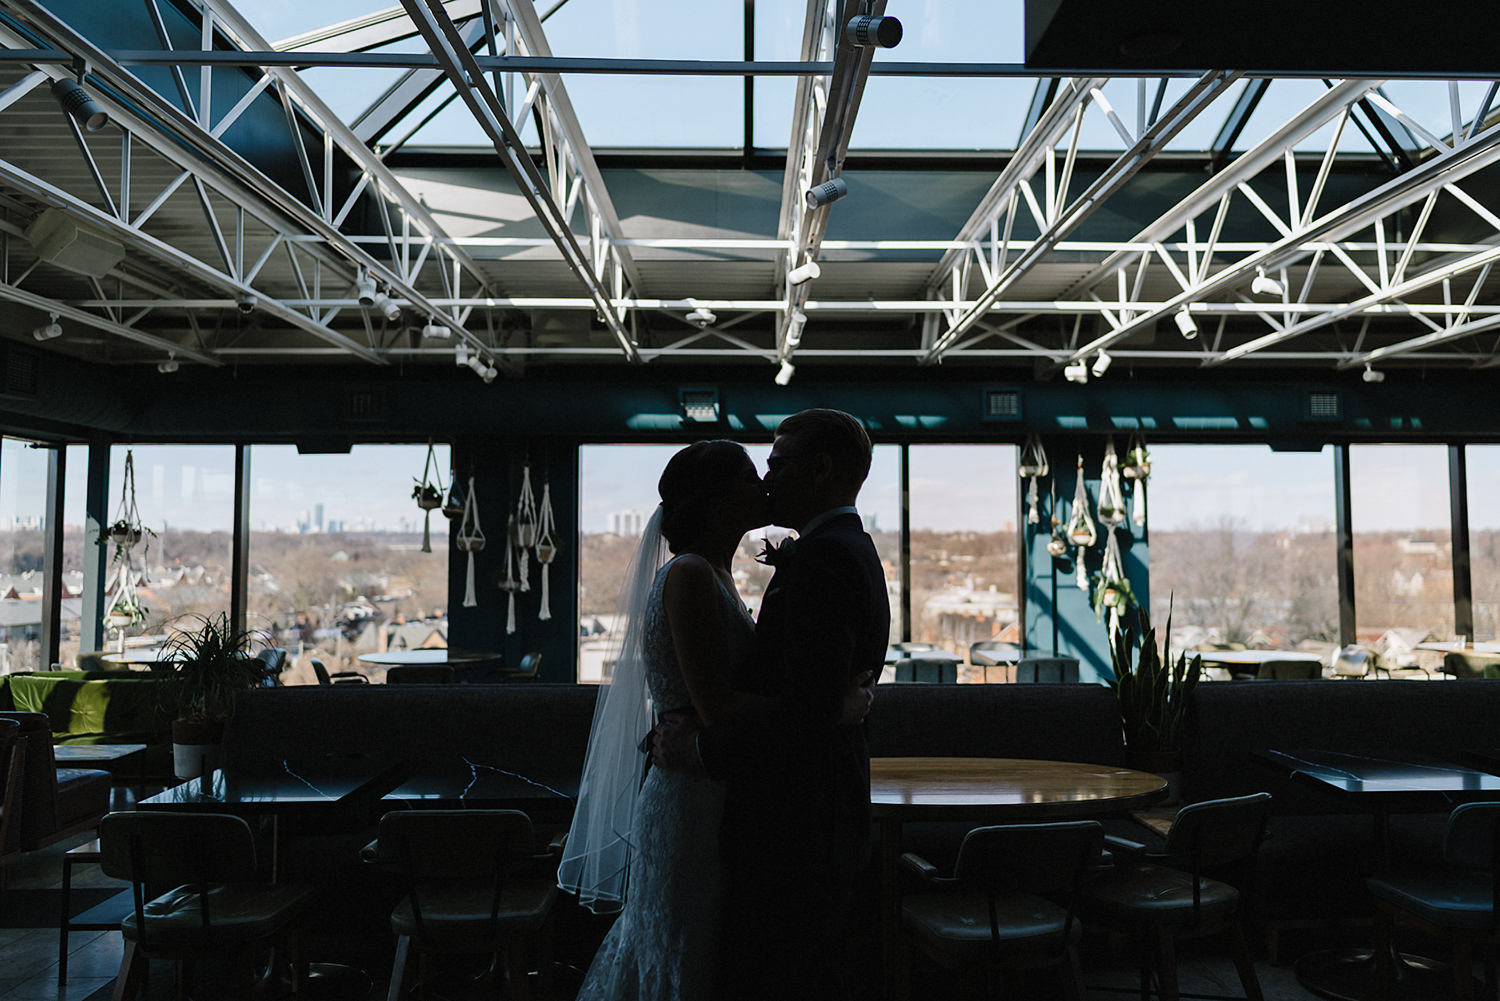 26-broadview-hotel-real-wedding-in-downtown-toronto-best-venues-broadview-hotel-wedding-photos-analog-wedding-photography-26.jpg